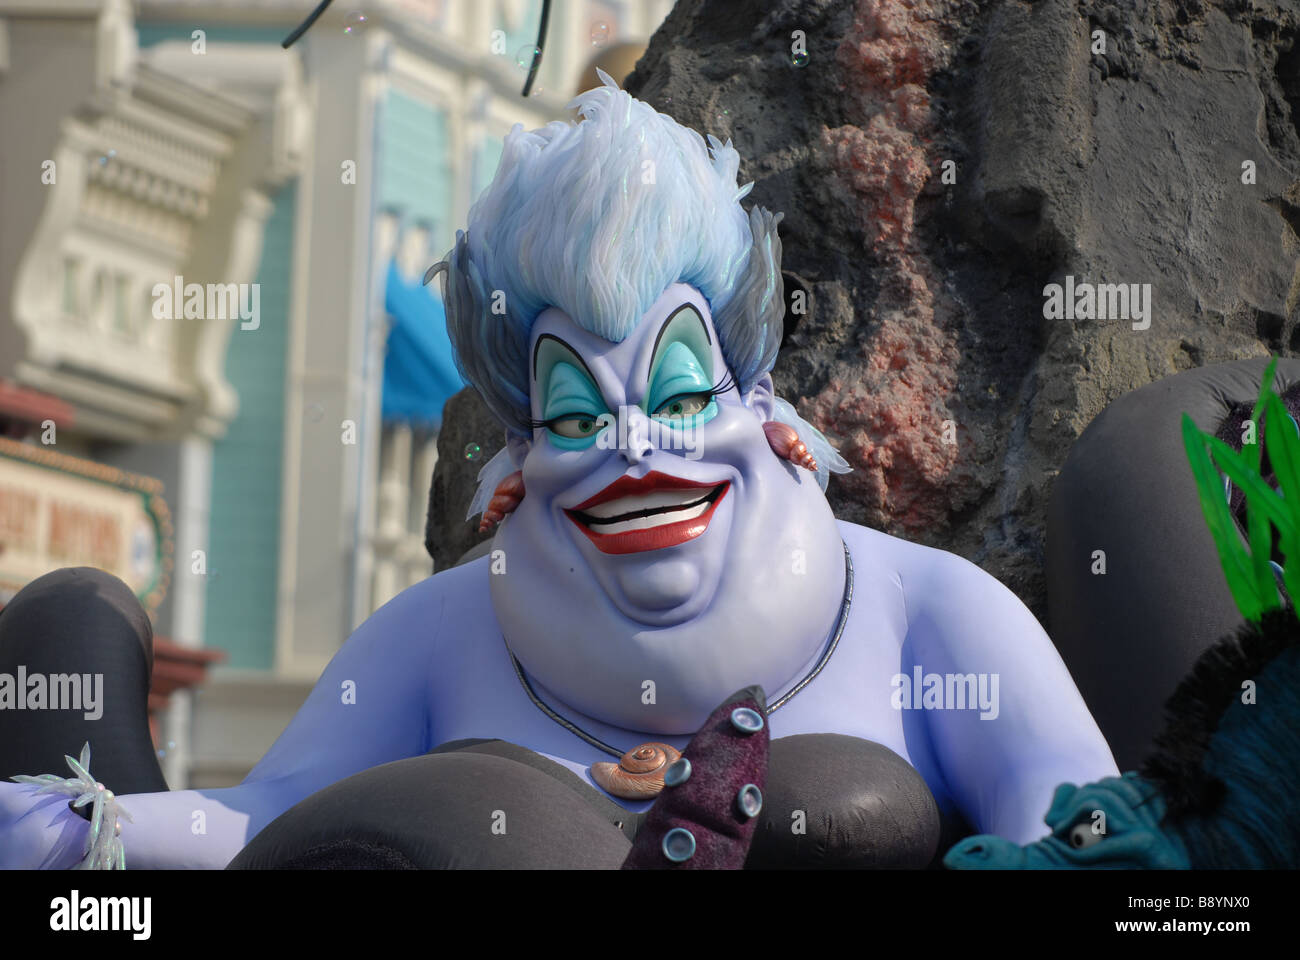 Ursula from the Little Mermaid film on parade at Disneyland, Paris - Stock Image